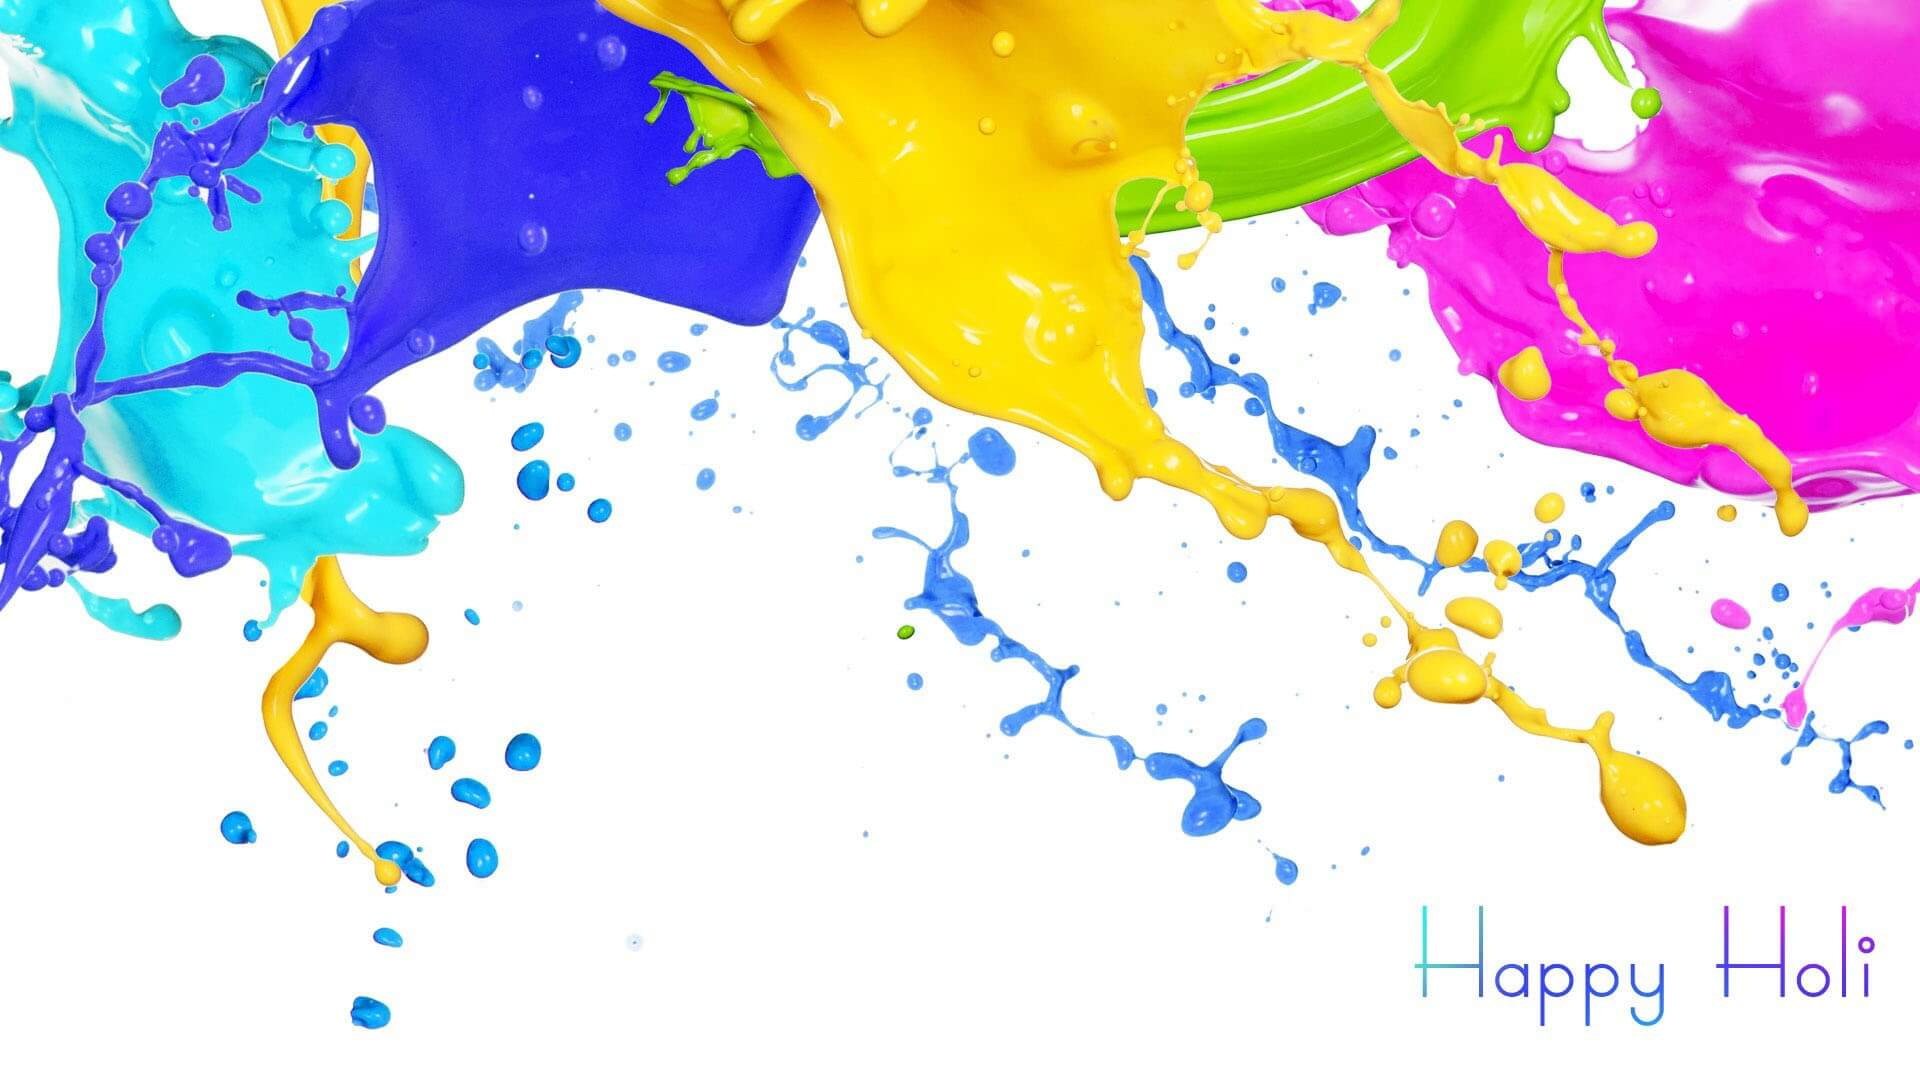 happy holi colors festival wishes hd 3d wallpaper